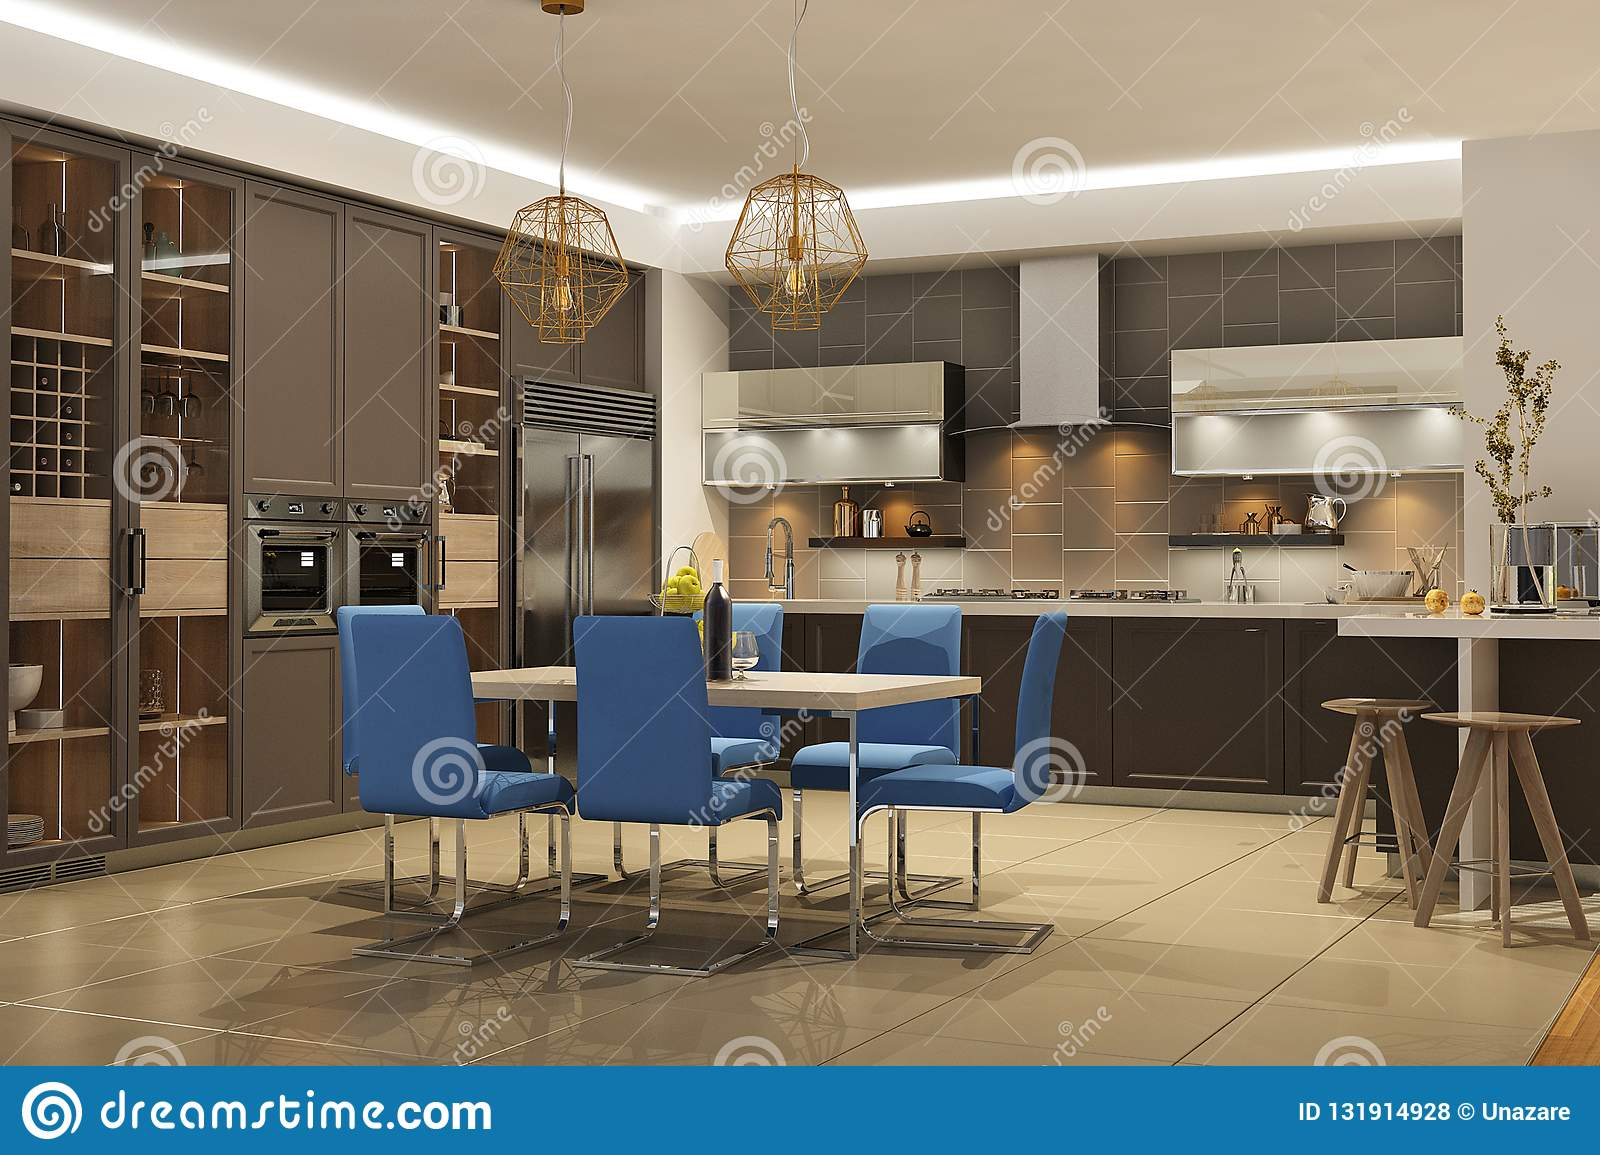 Modern Style Interior Of Living Room With The Kitchen In